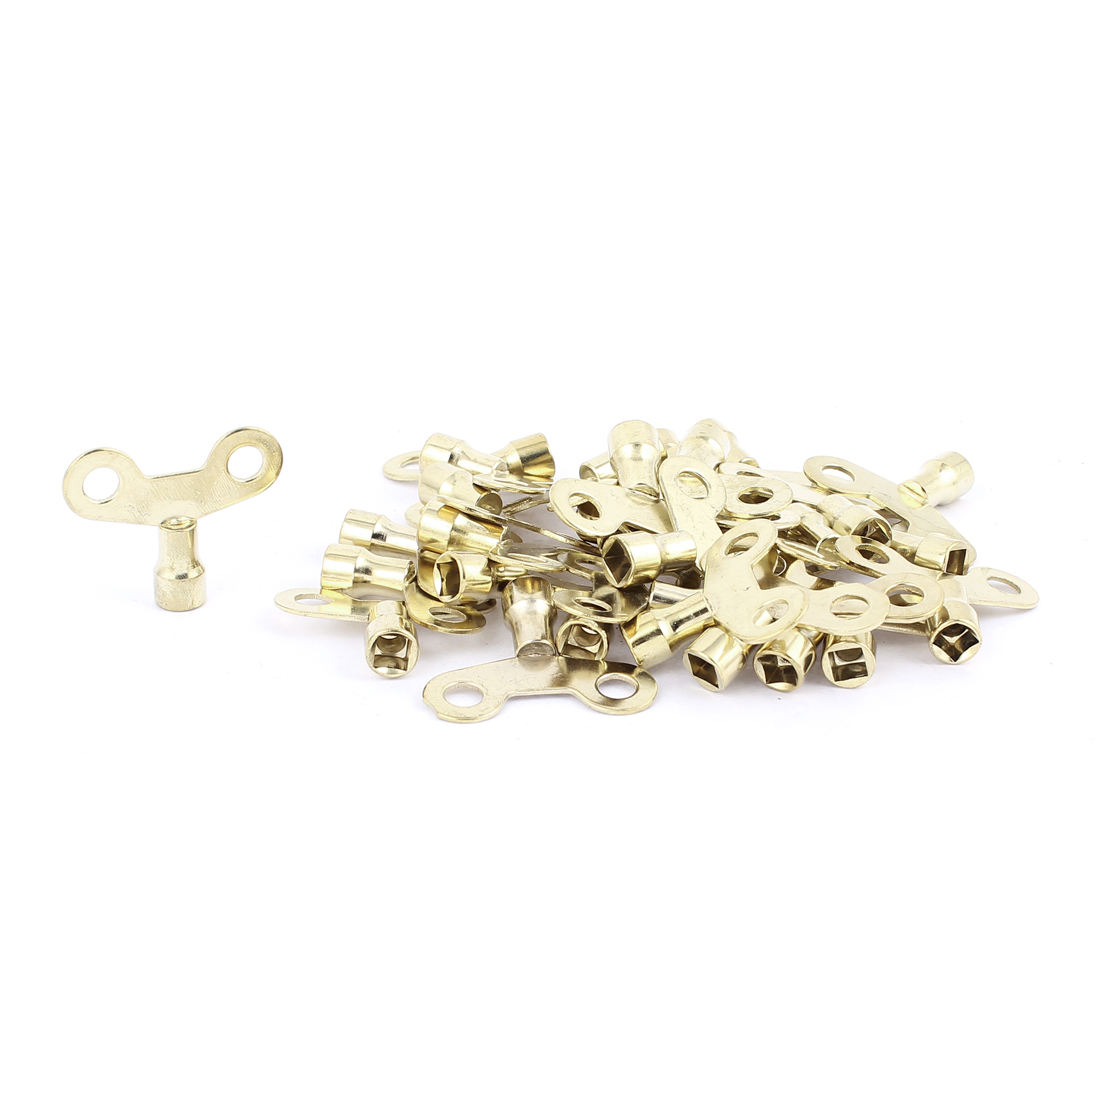 6mm x 6mm Square Socket Hole Water Tap Faucet Key Knobs Switch Gold Tone 30 Pcs